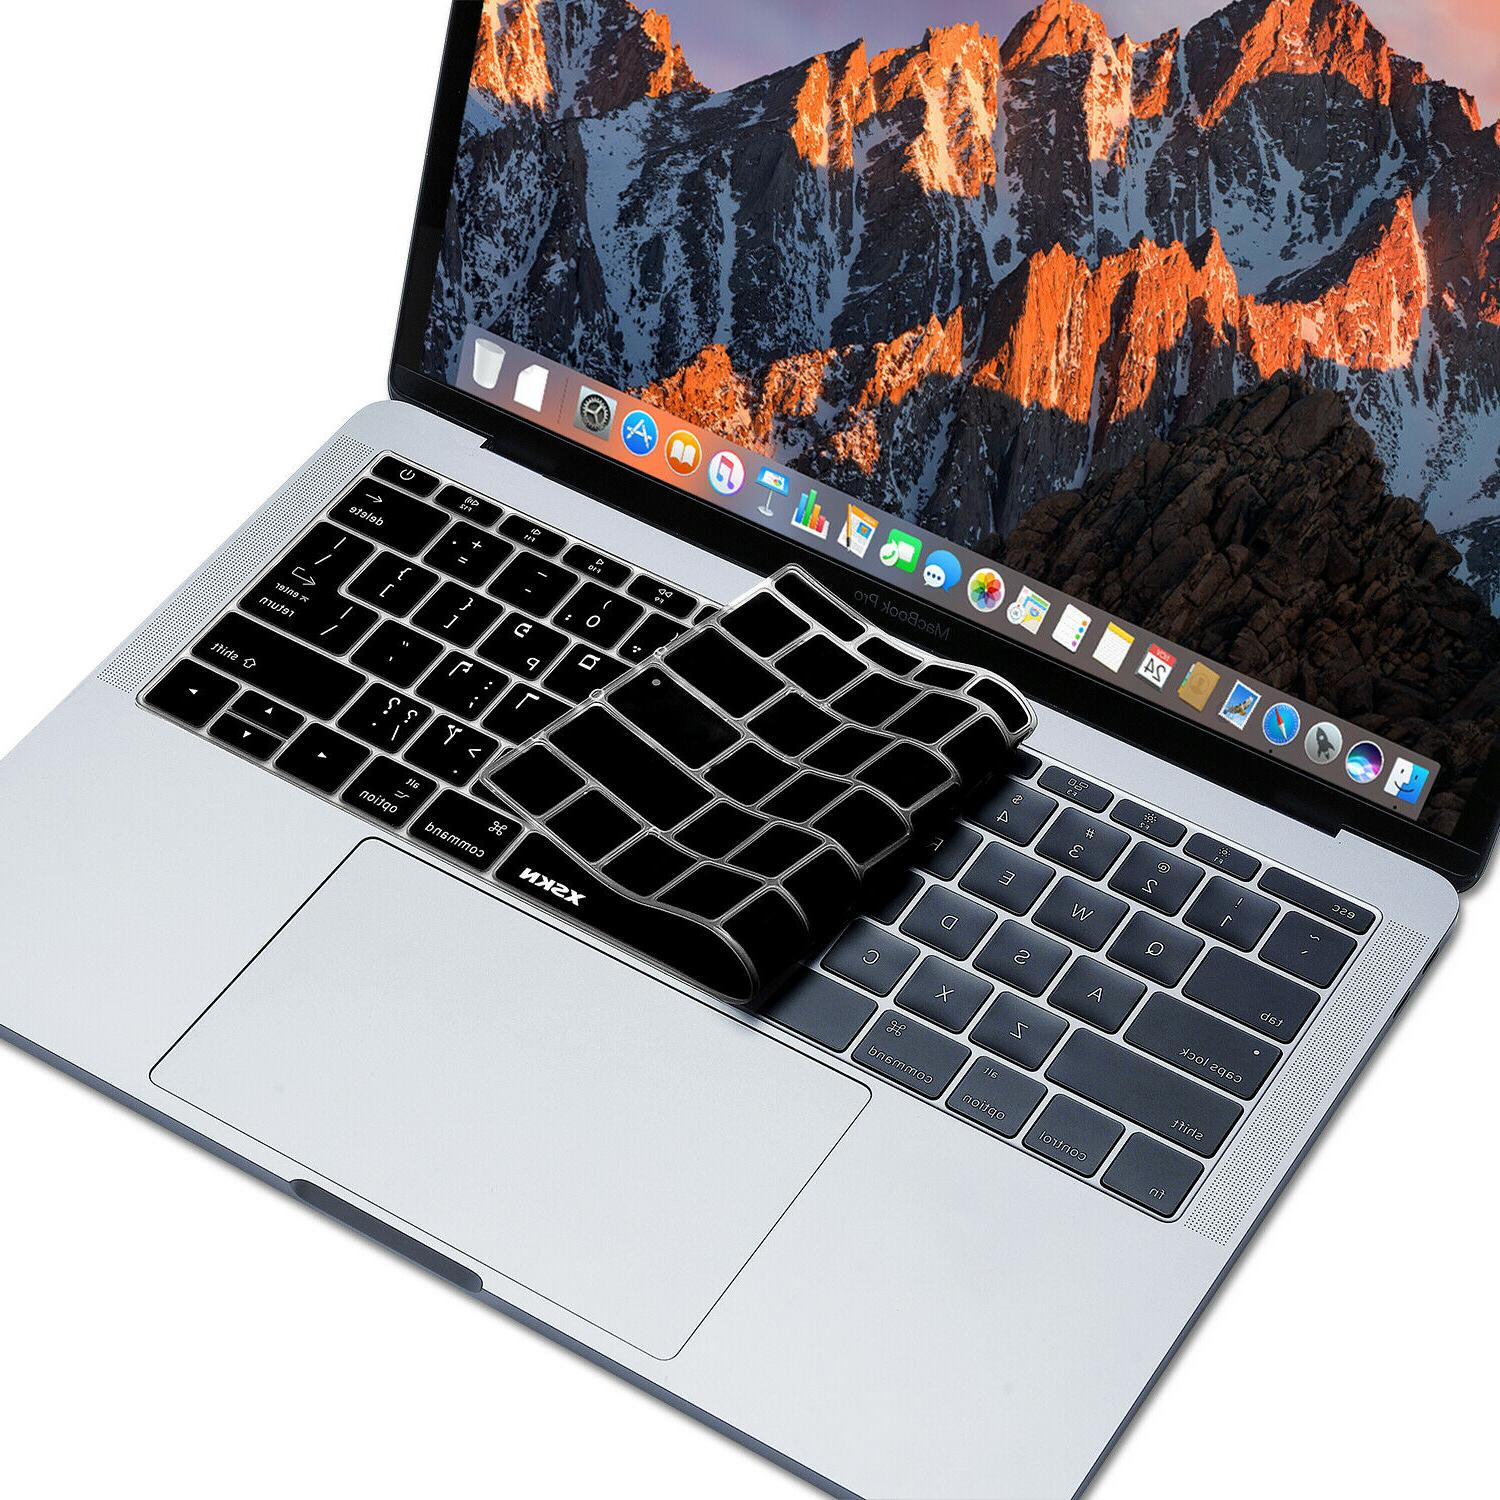 XSKN Hebrew Keyboard Cover for Macbook no 12-A1534